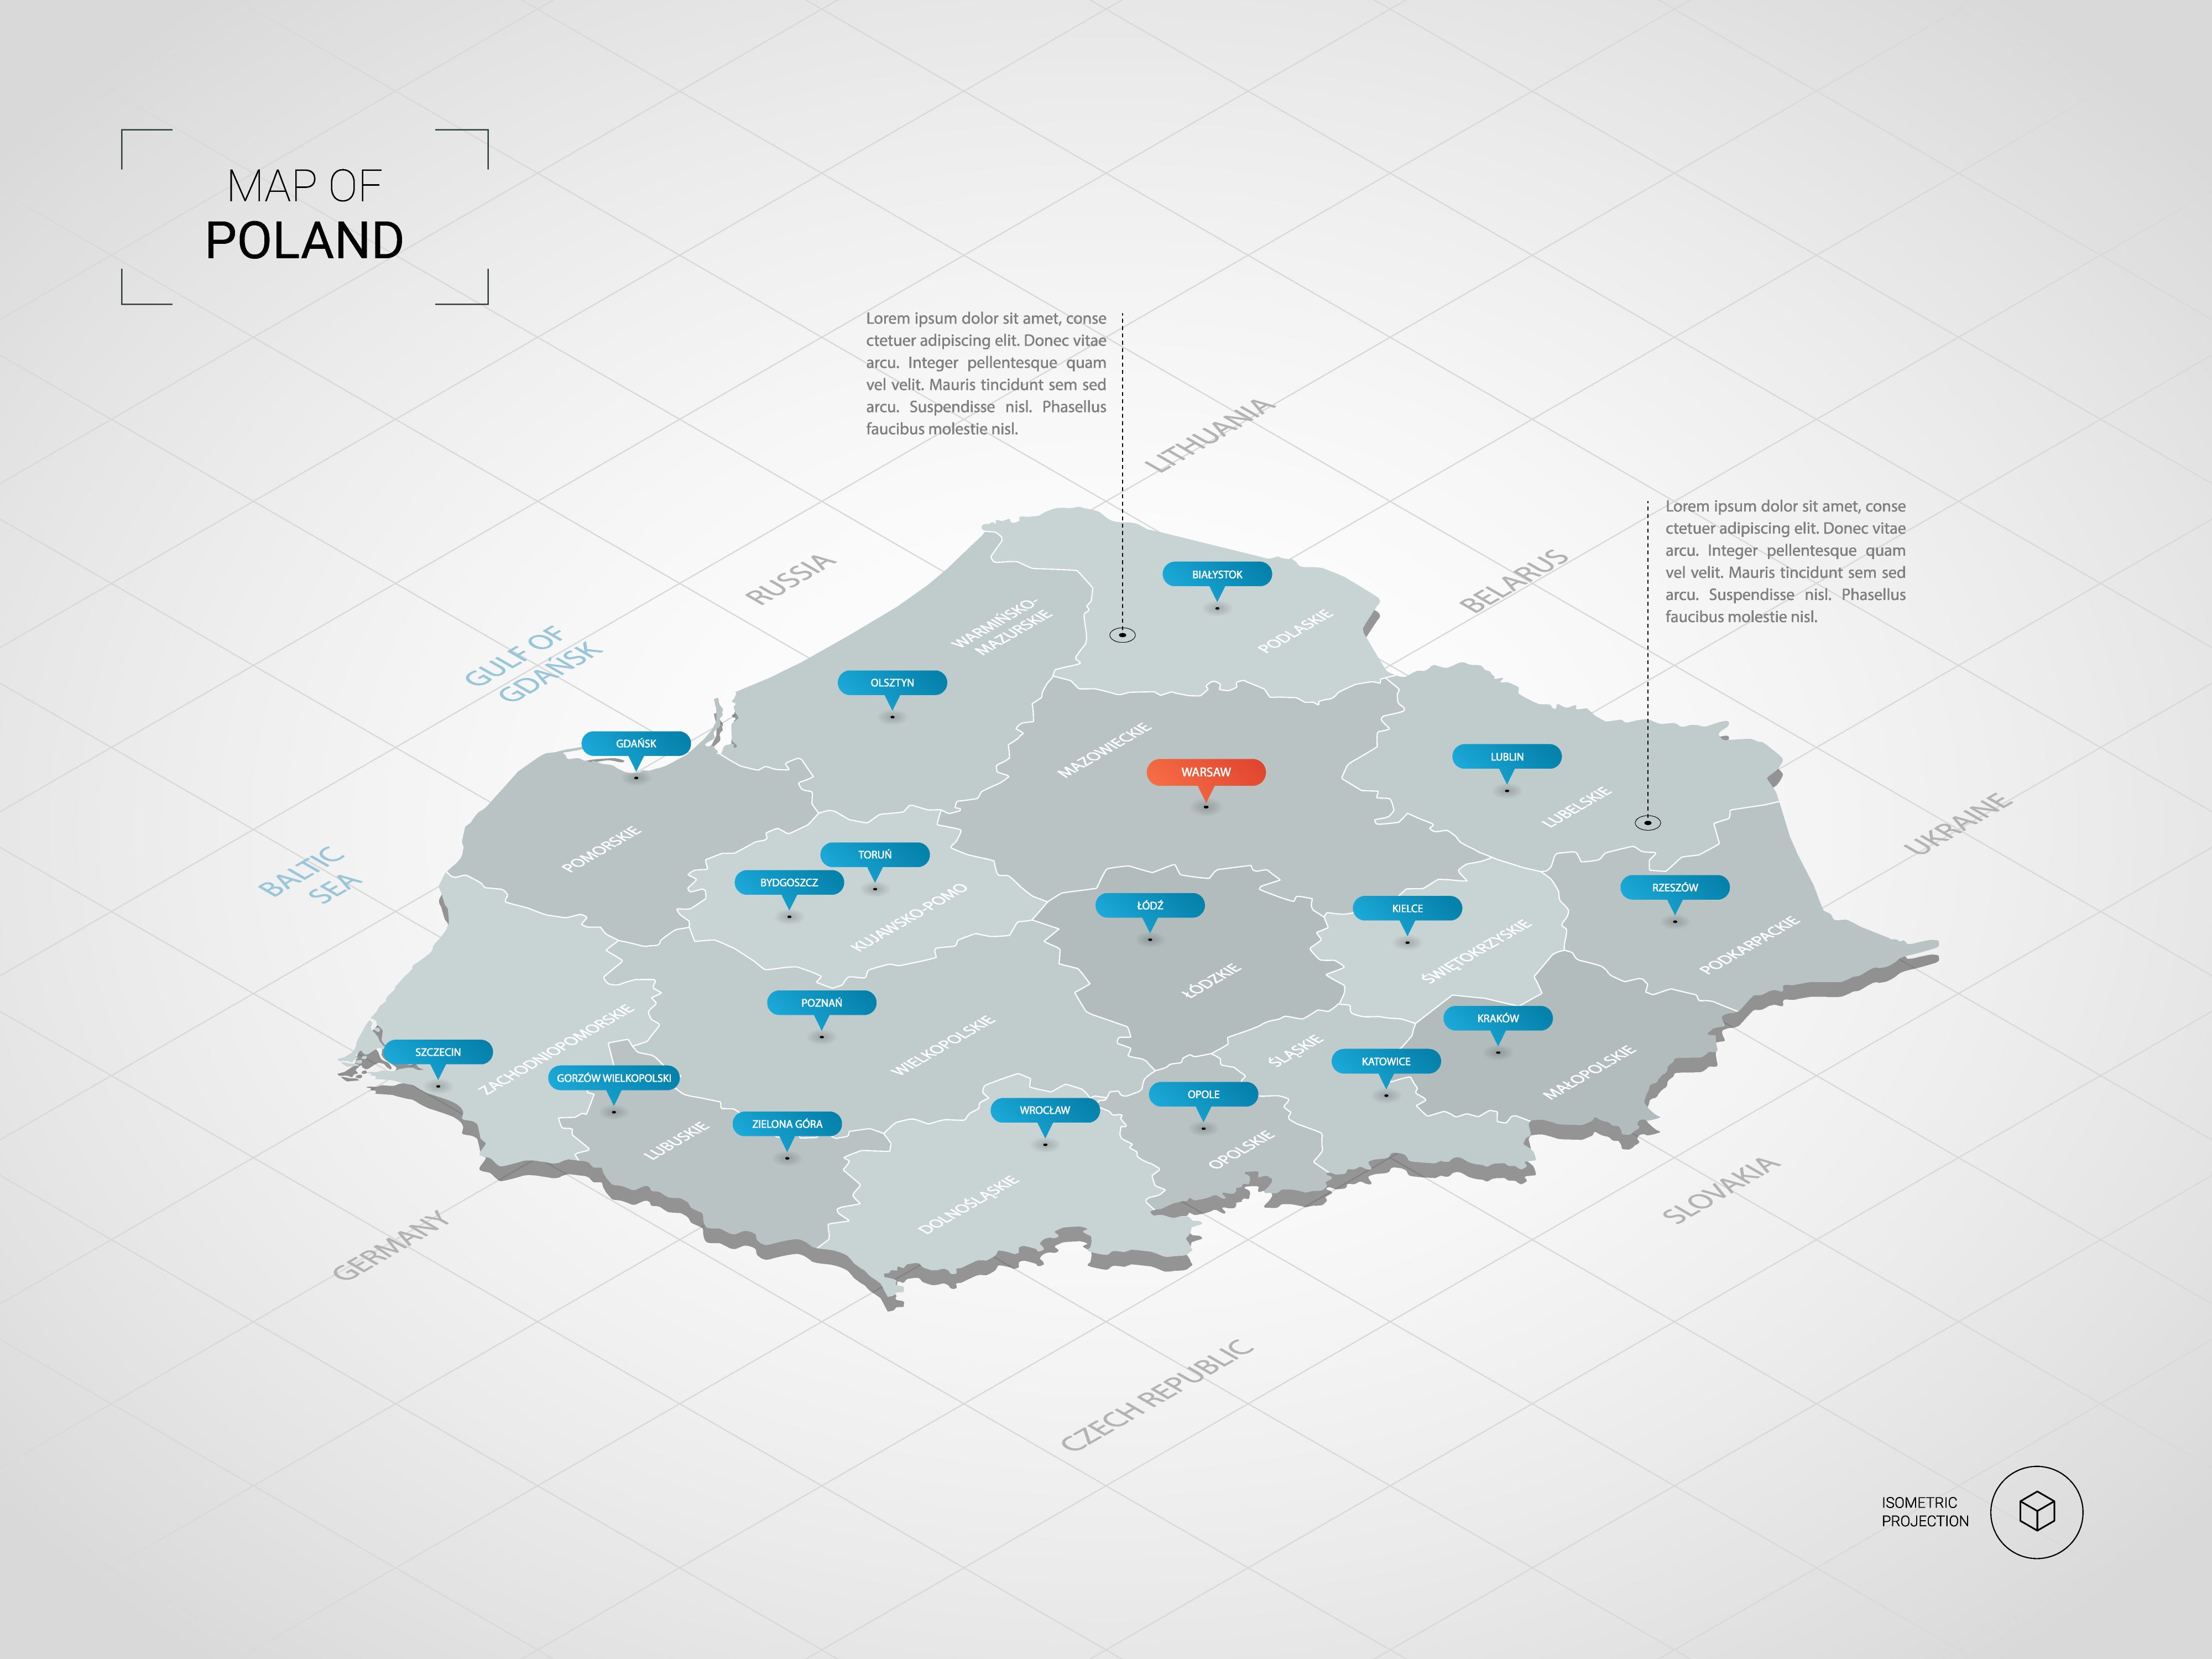 Capital Of Poland Map.Isometric 3d Poland Map Stylized Vector Map Illustration With